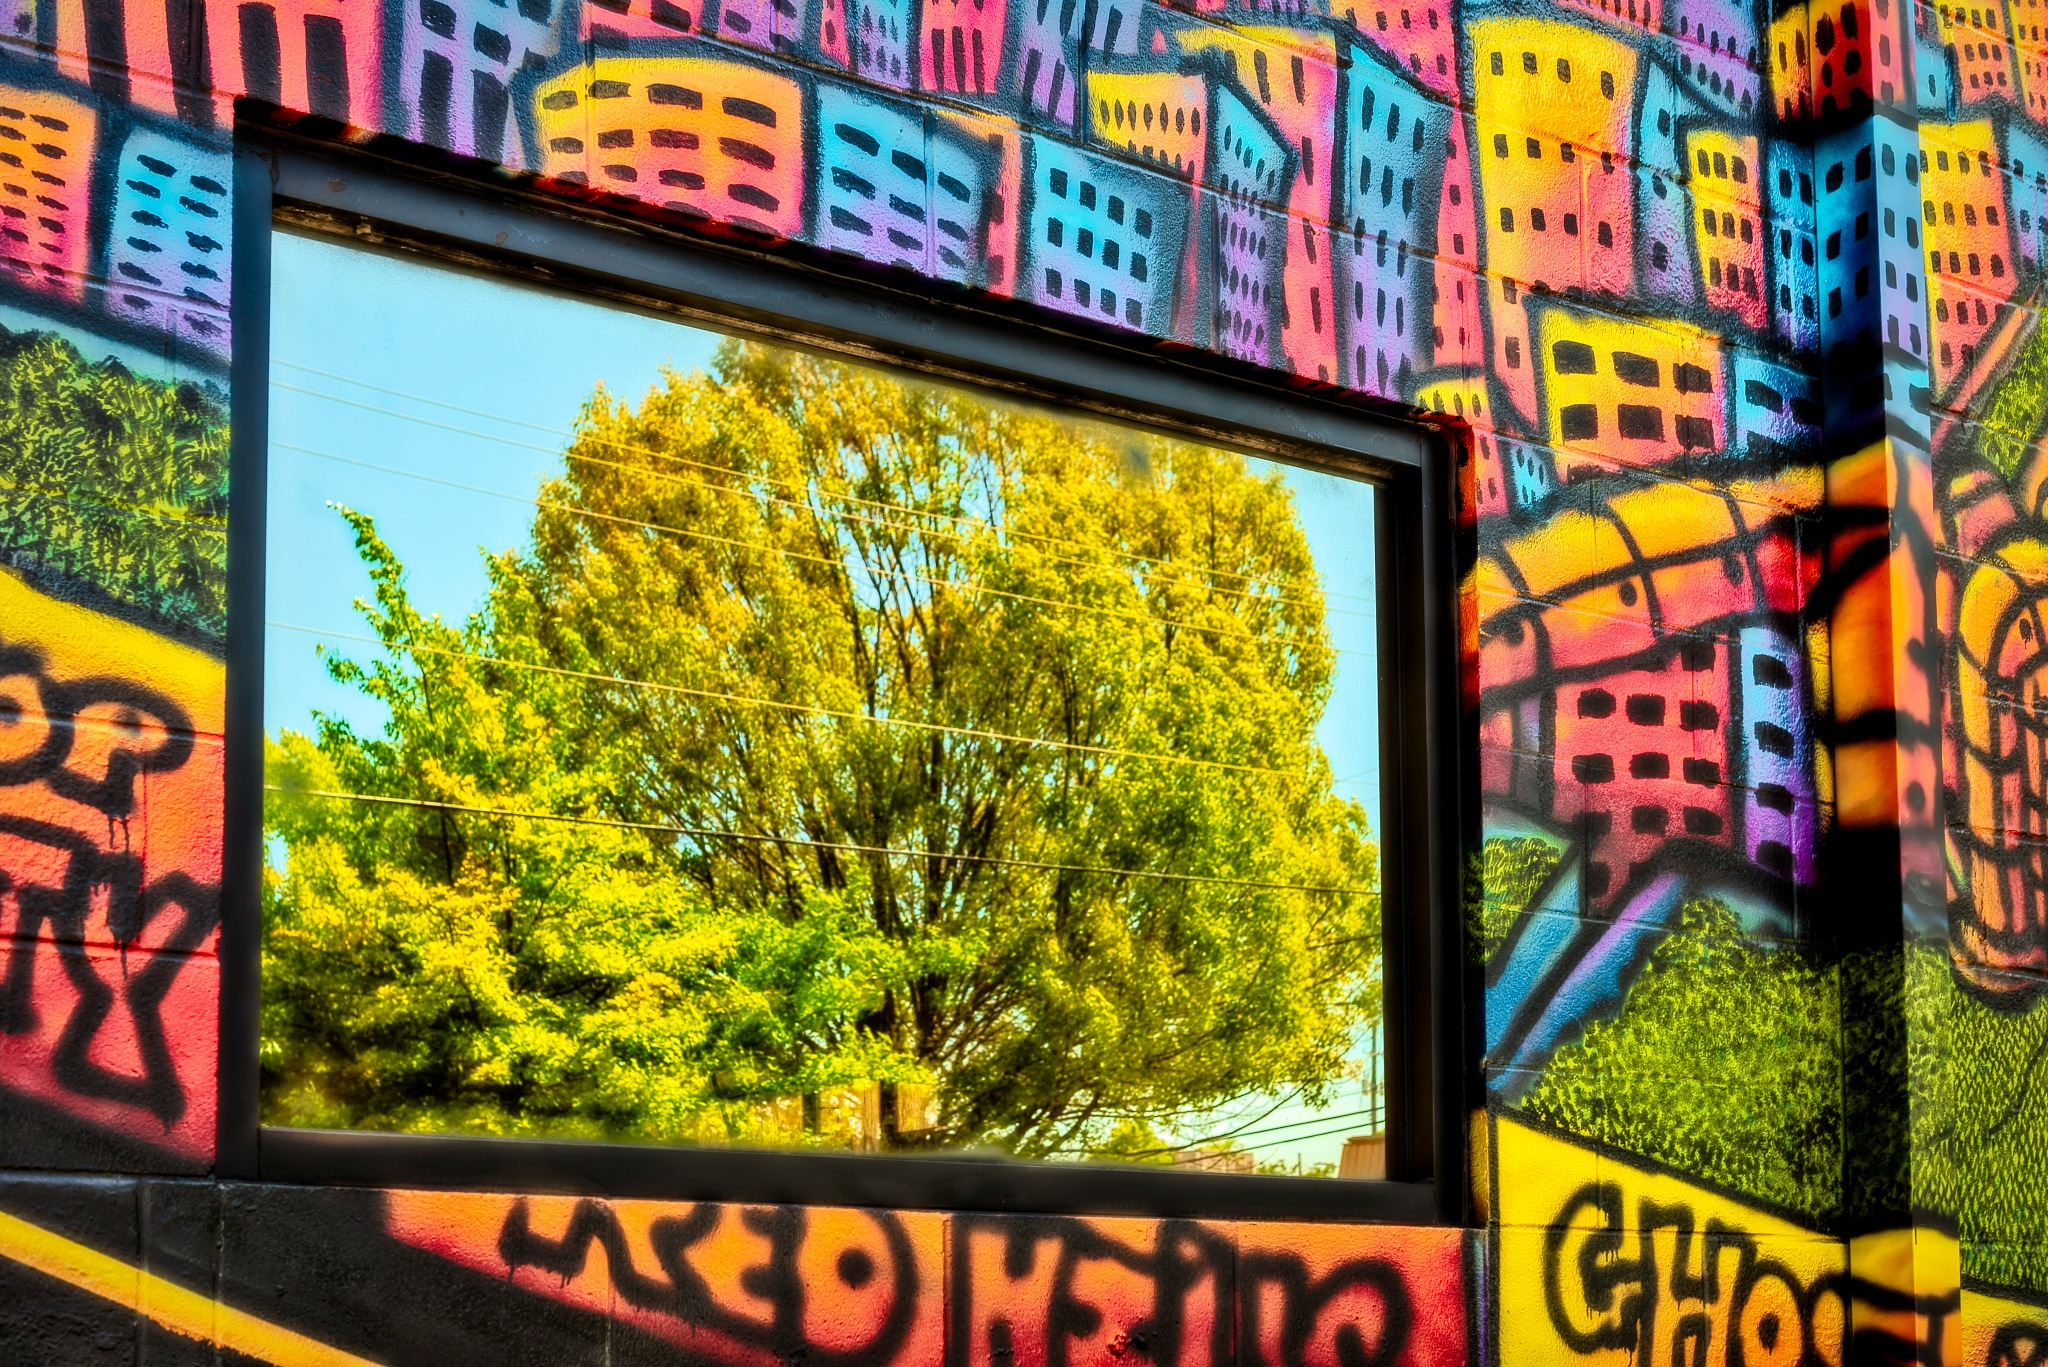 window reflection on a wall by Gerry Daniel